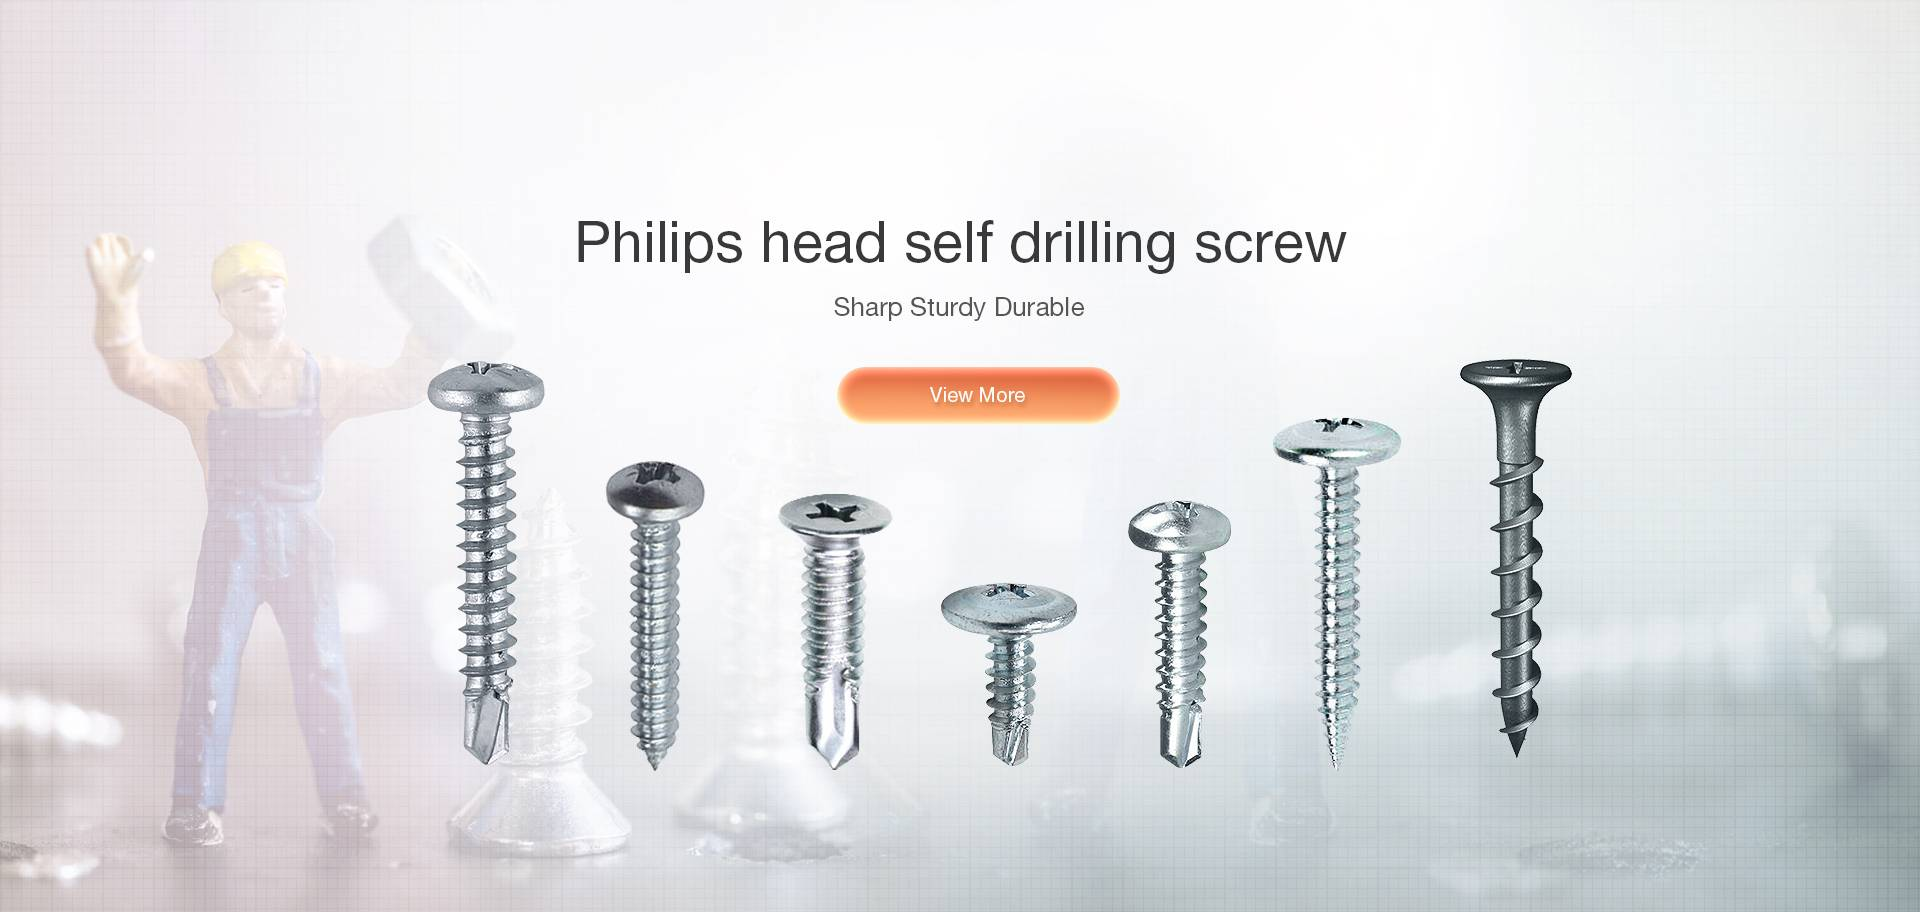 csk-head-self-drilling-screw,-pan-head-self-drilling-screw,truss-head-self-drilling-screw,-drywall-screw,-chipboard-screw,wood-screw